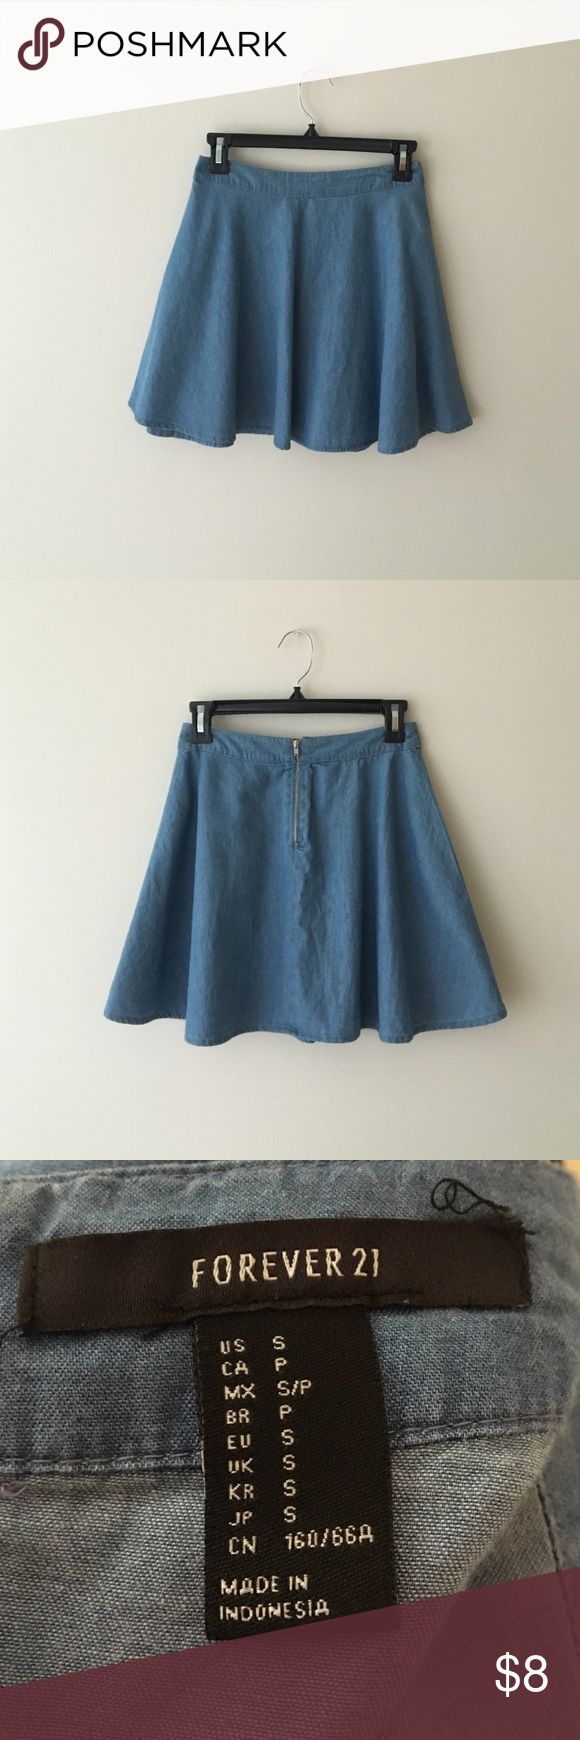 Blue Denim Skater Skirt light blue, silver zipper goes 1/3 down back, goes a little past mid thigh, thin denim material, no flaws, been sitting in my closet for awhile now! worn once for a photo shoot Forever 21 Skirts Circle & Skater